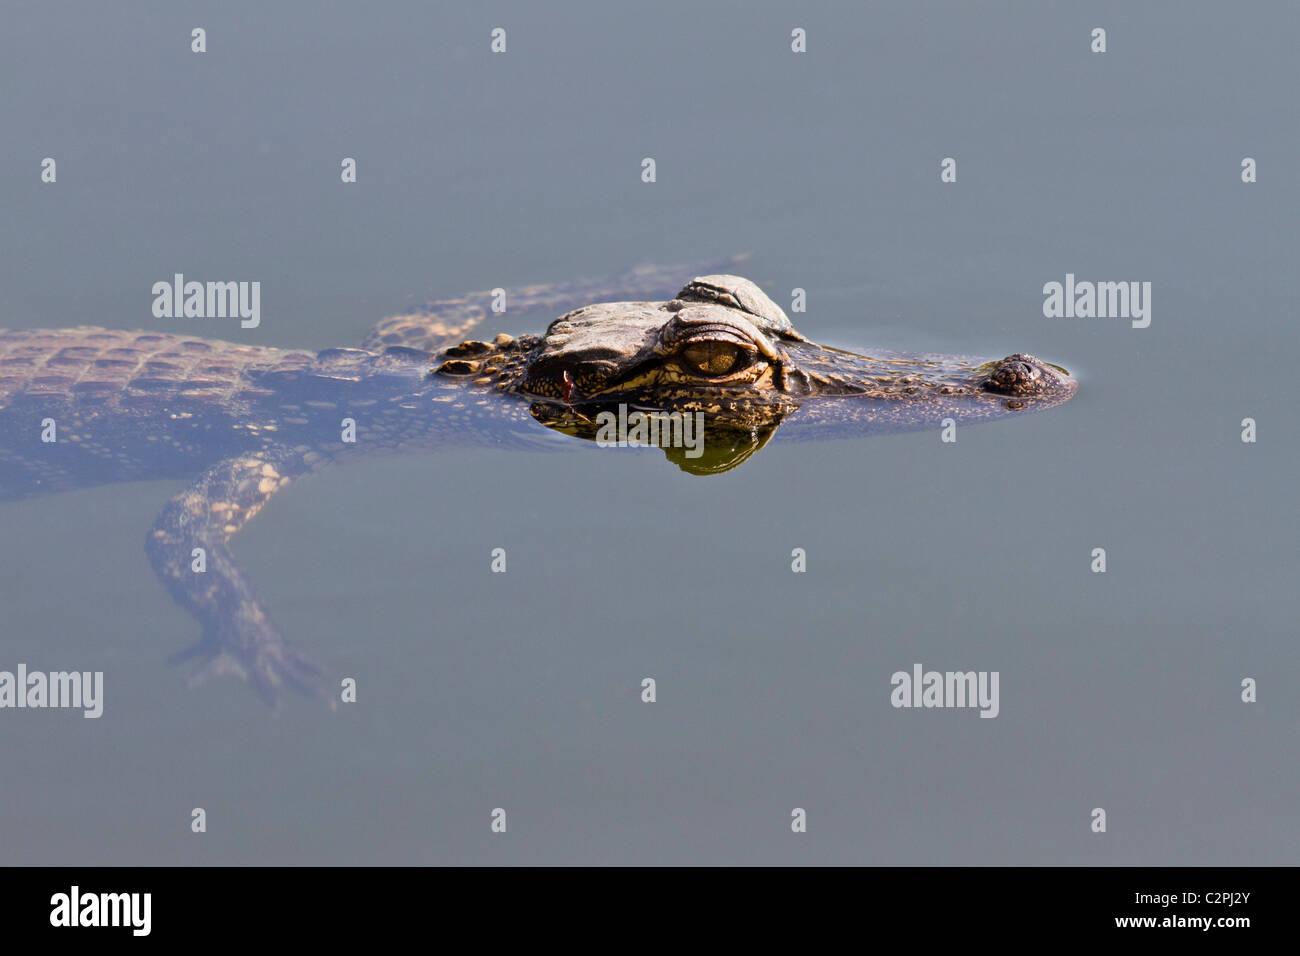 Young alligator, Alligator mississippiensis, floating at the surface. Everglades National Park, Florida, USA Stock Photo